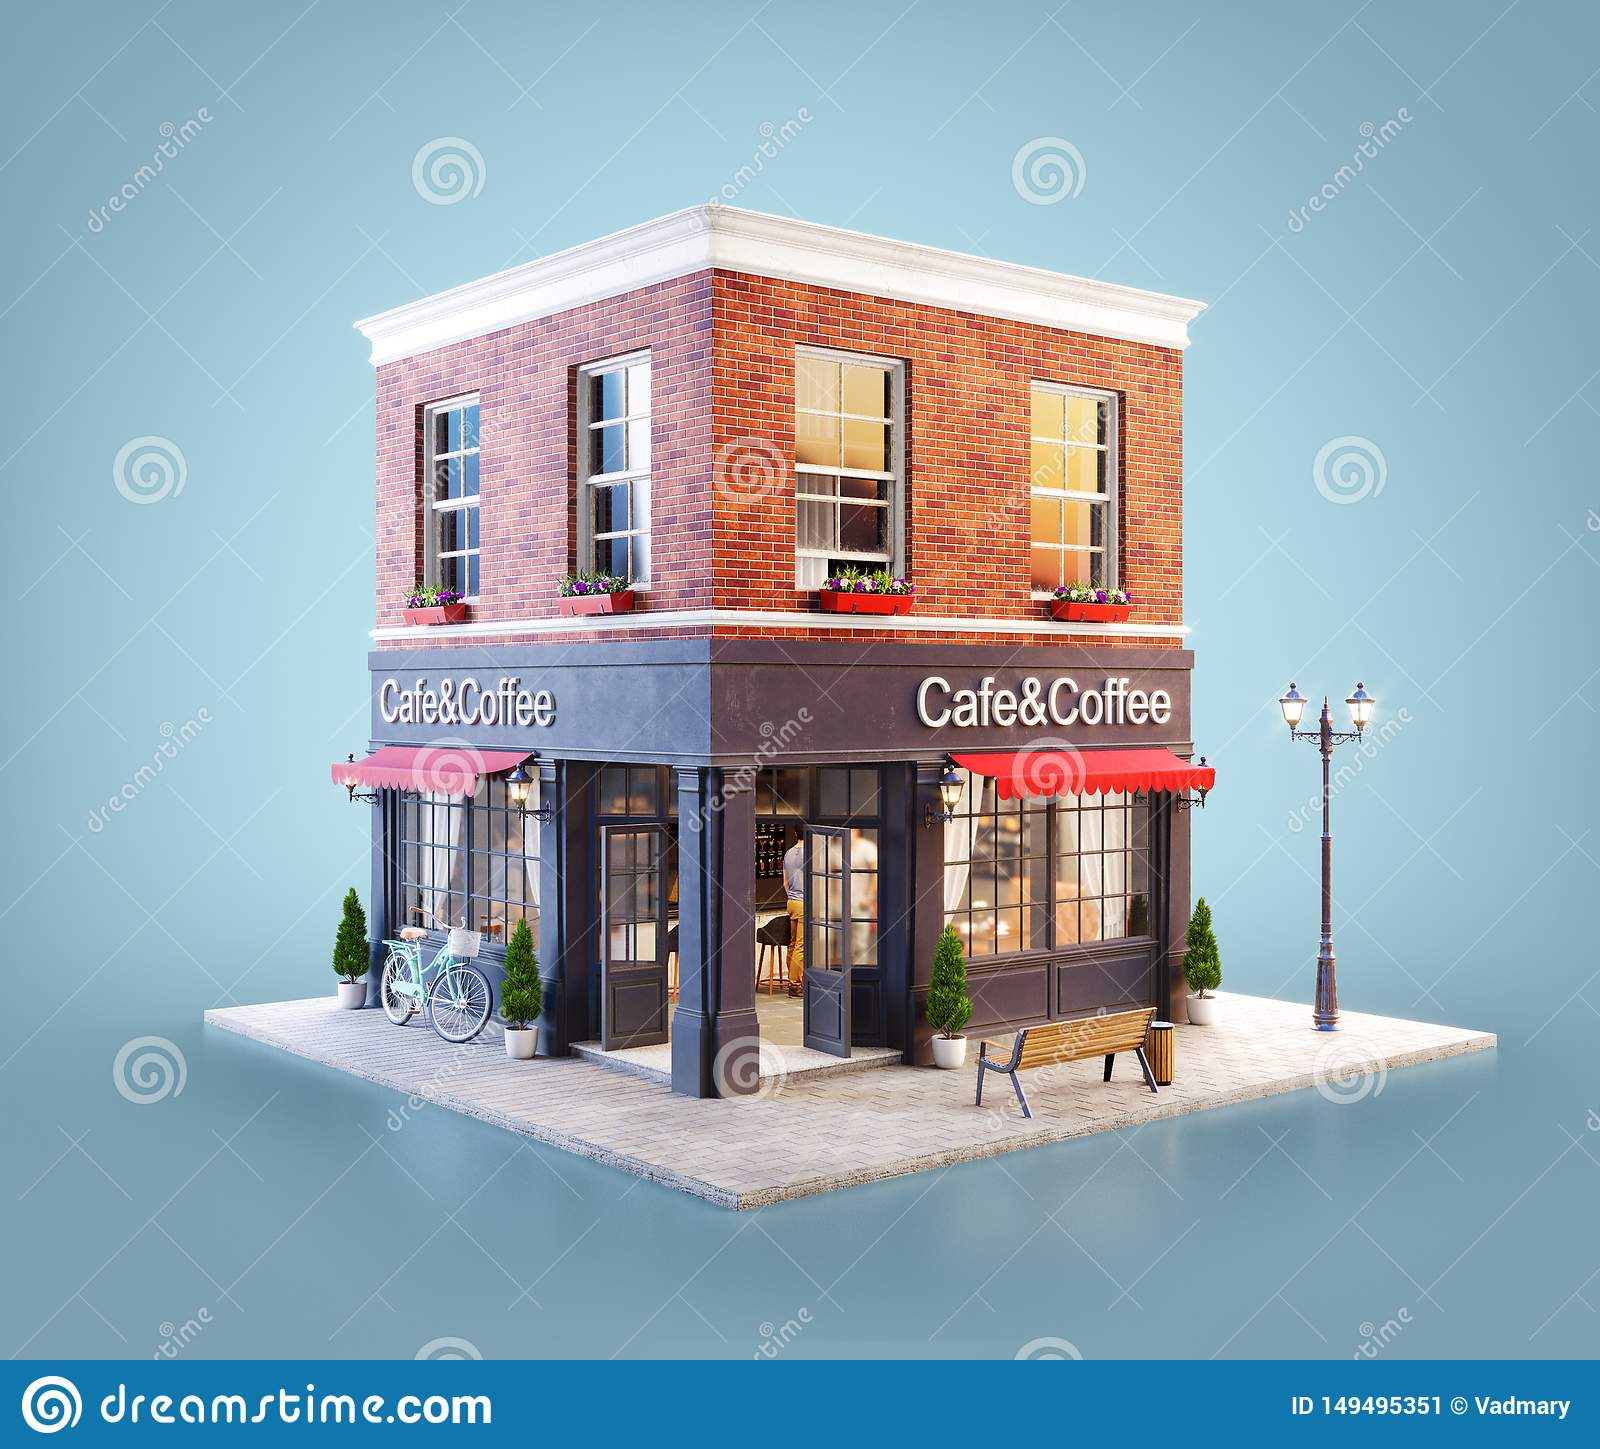 Unusual 3d Illustration Of A Cozy Cafe Stock Illustration Illustration Of Cuisine Architecture 149495351